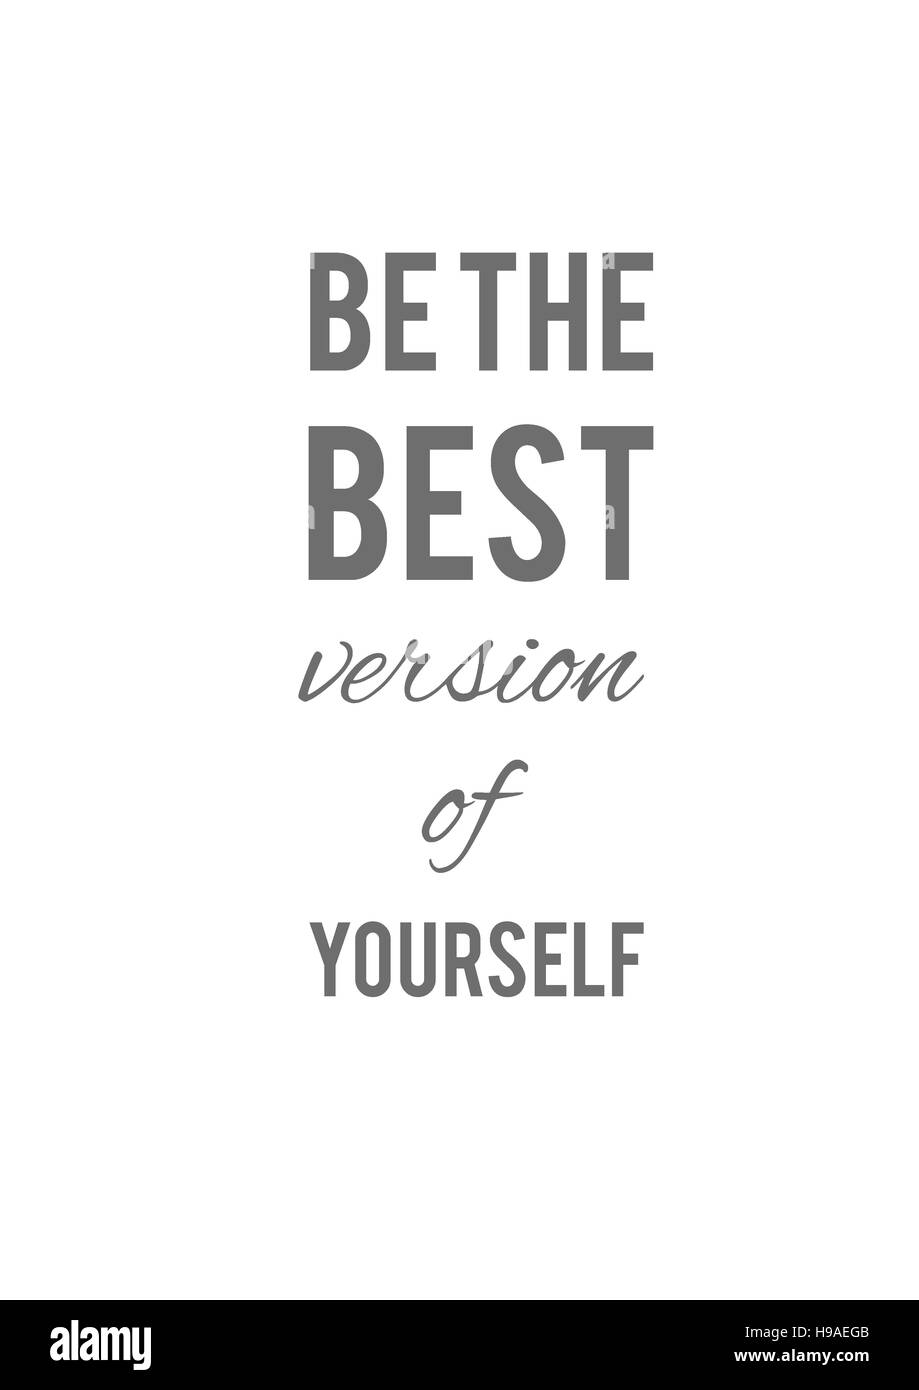 Be the best version of yourself, backgrounds, textures, motivation, poster, quote, illustration - Stock Image